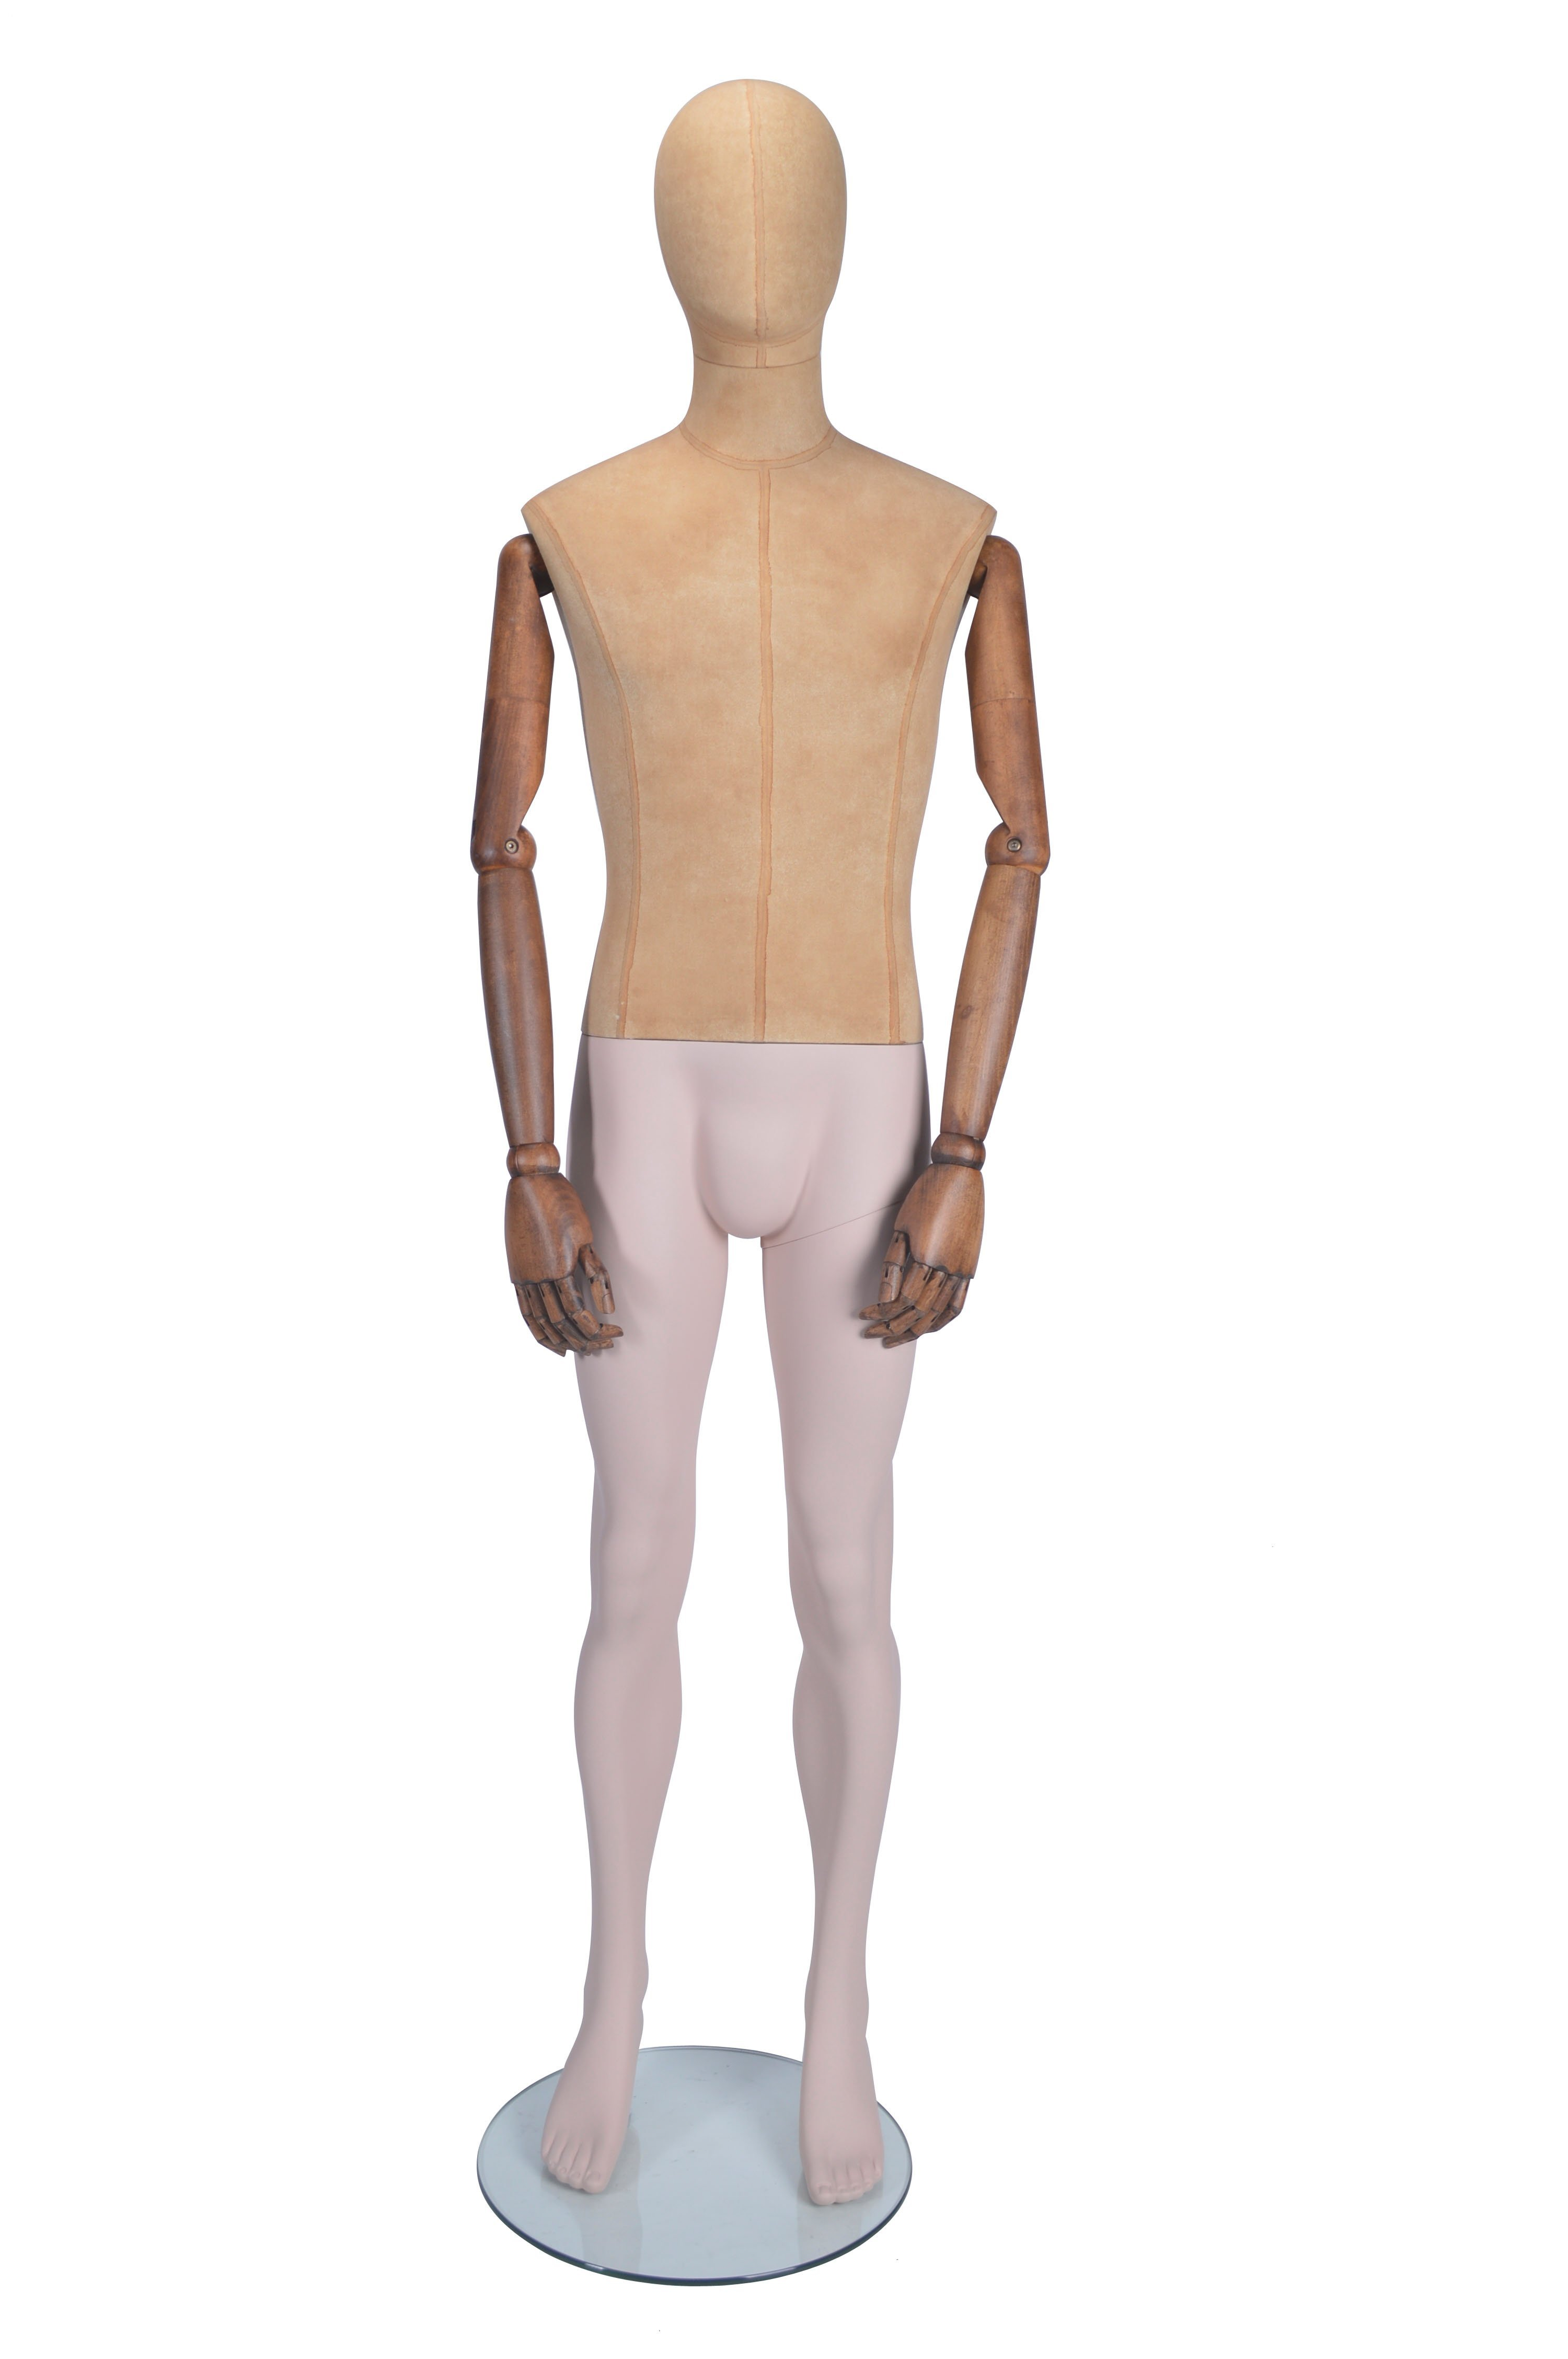 Standing Male Mannequin - Moveable Arms (Straight)